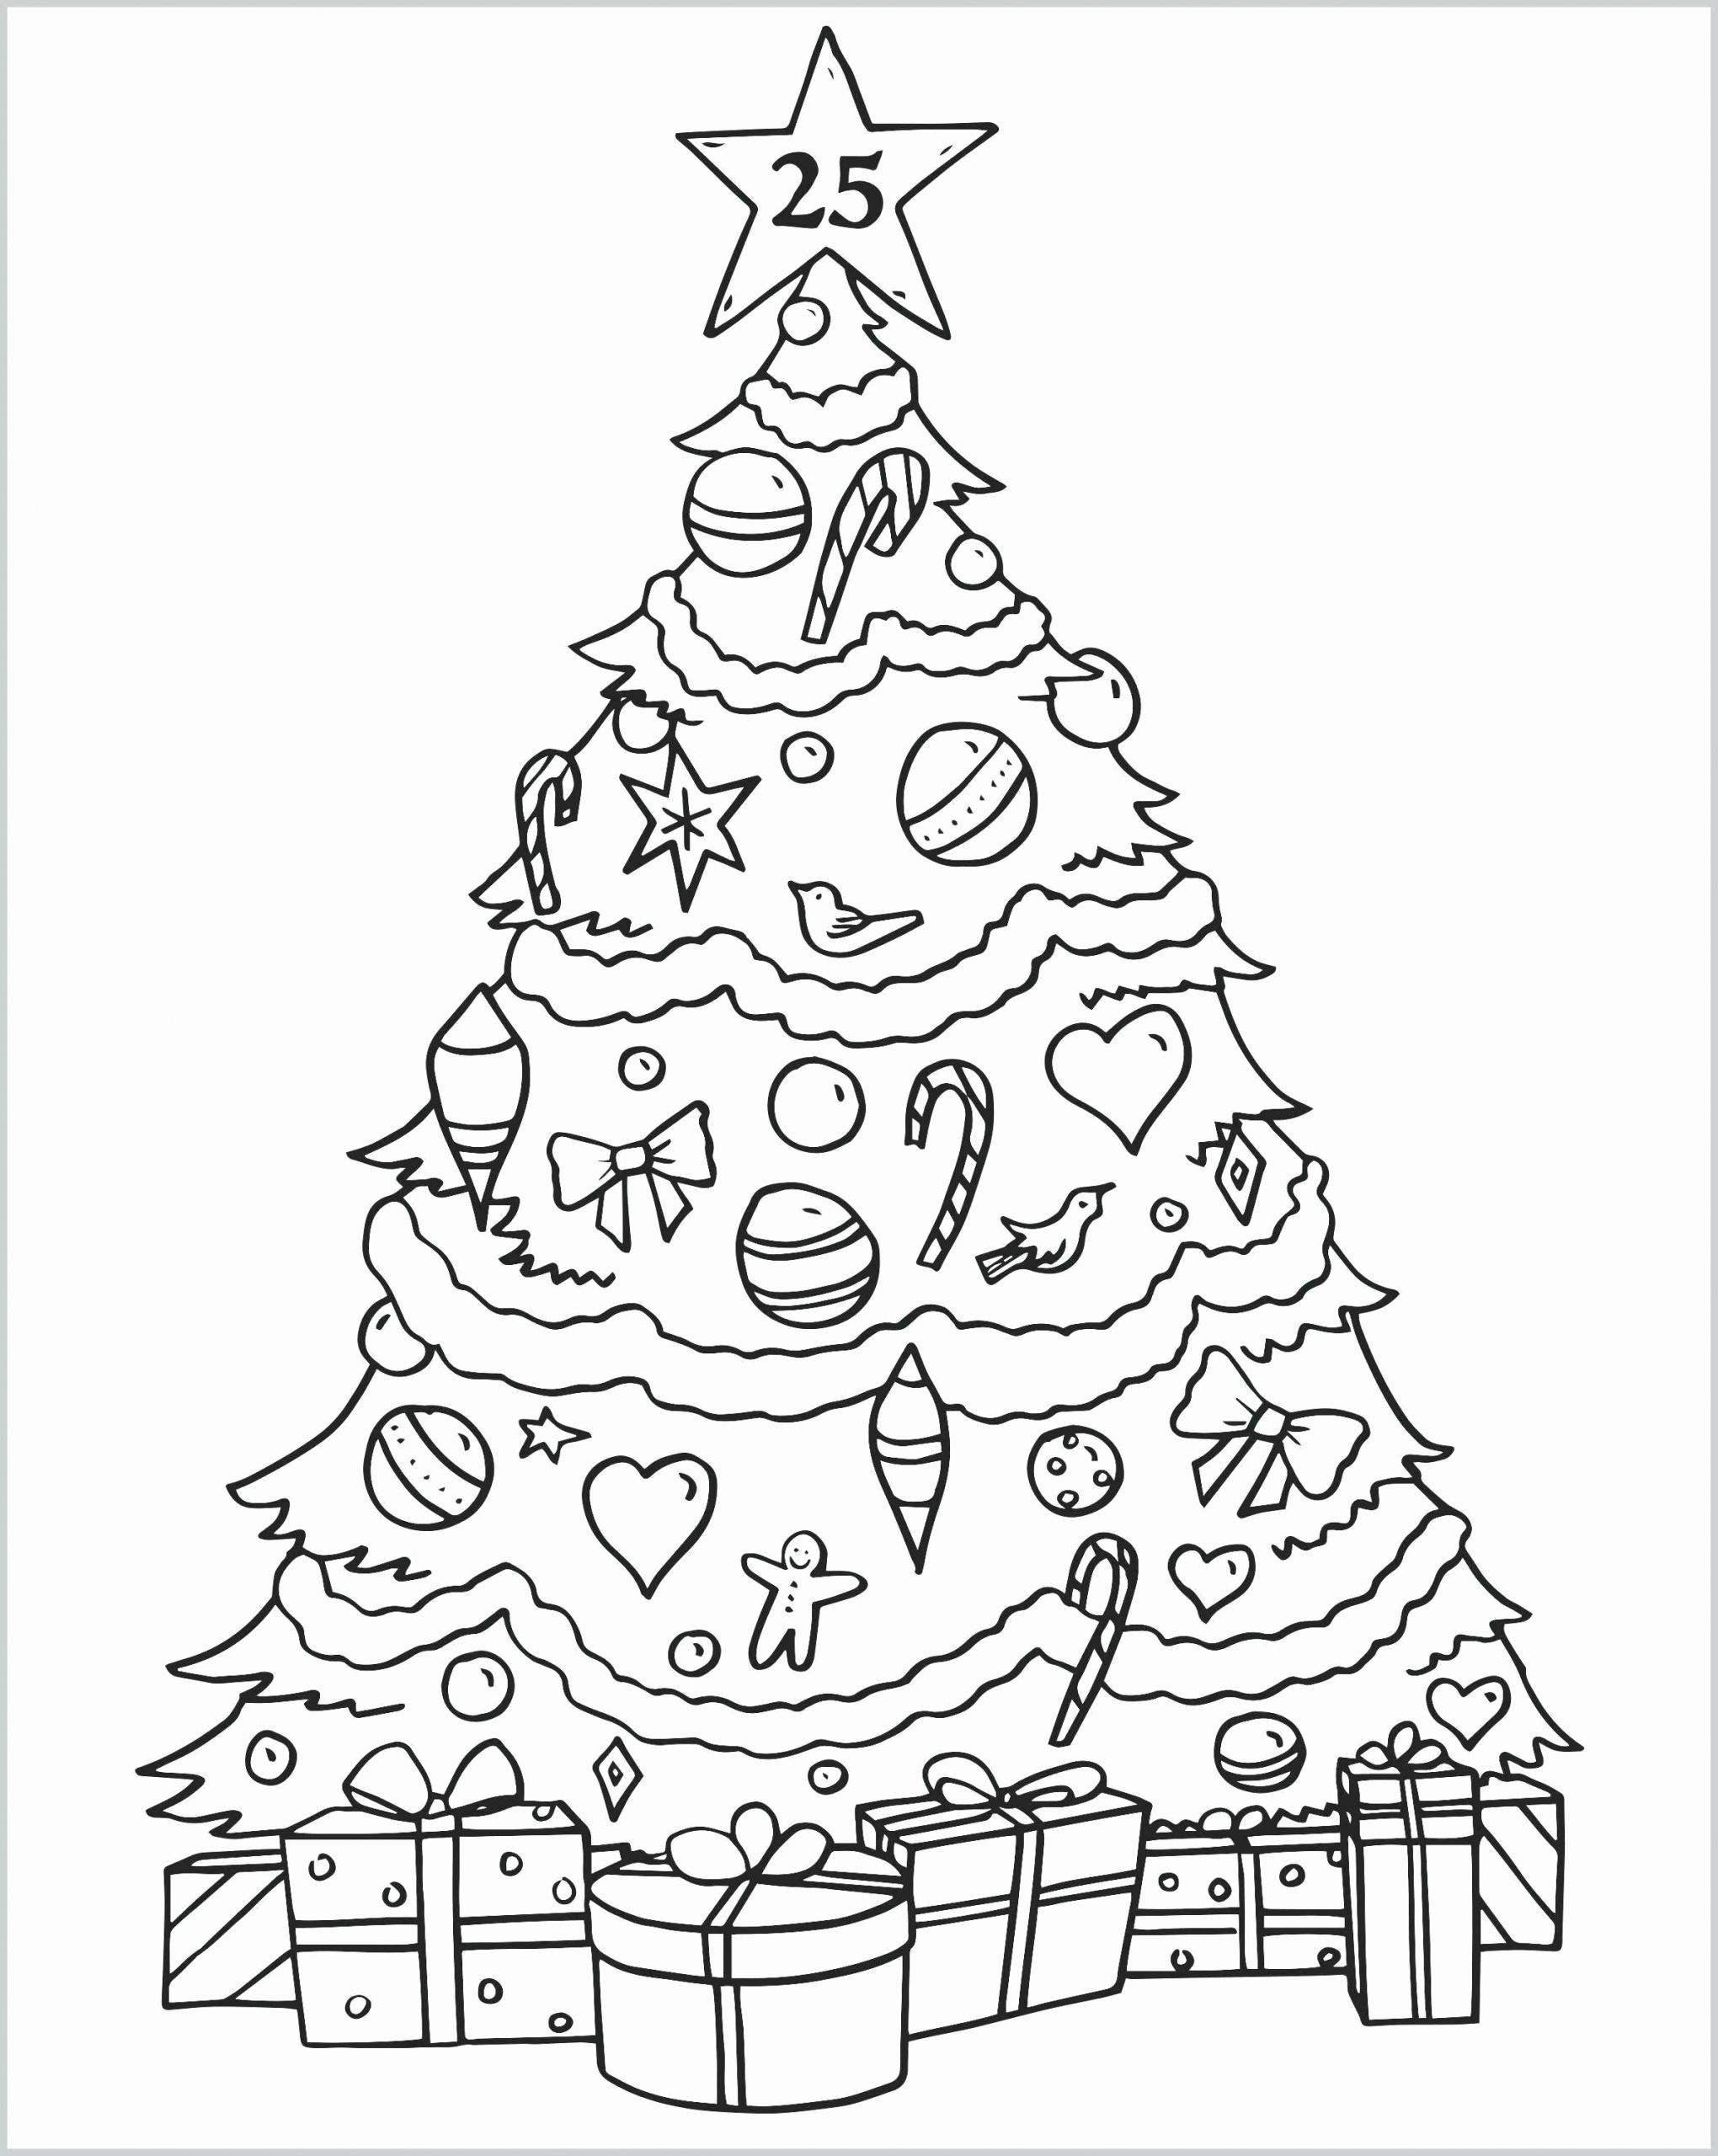 T For Tree Coloring Page Best Of Palm Tree Coloring Pages Printable Codeadventures Christmas Tree Coloring Page Tree Coloring Page Christmas Tree Drawing